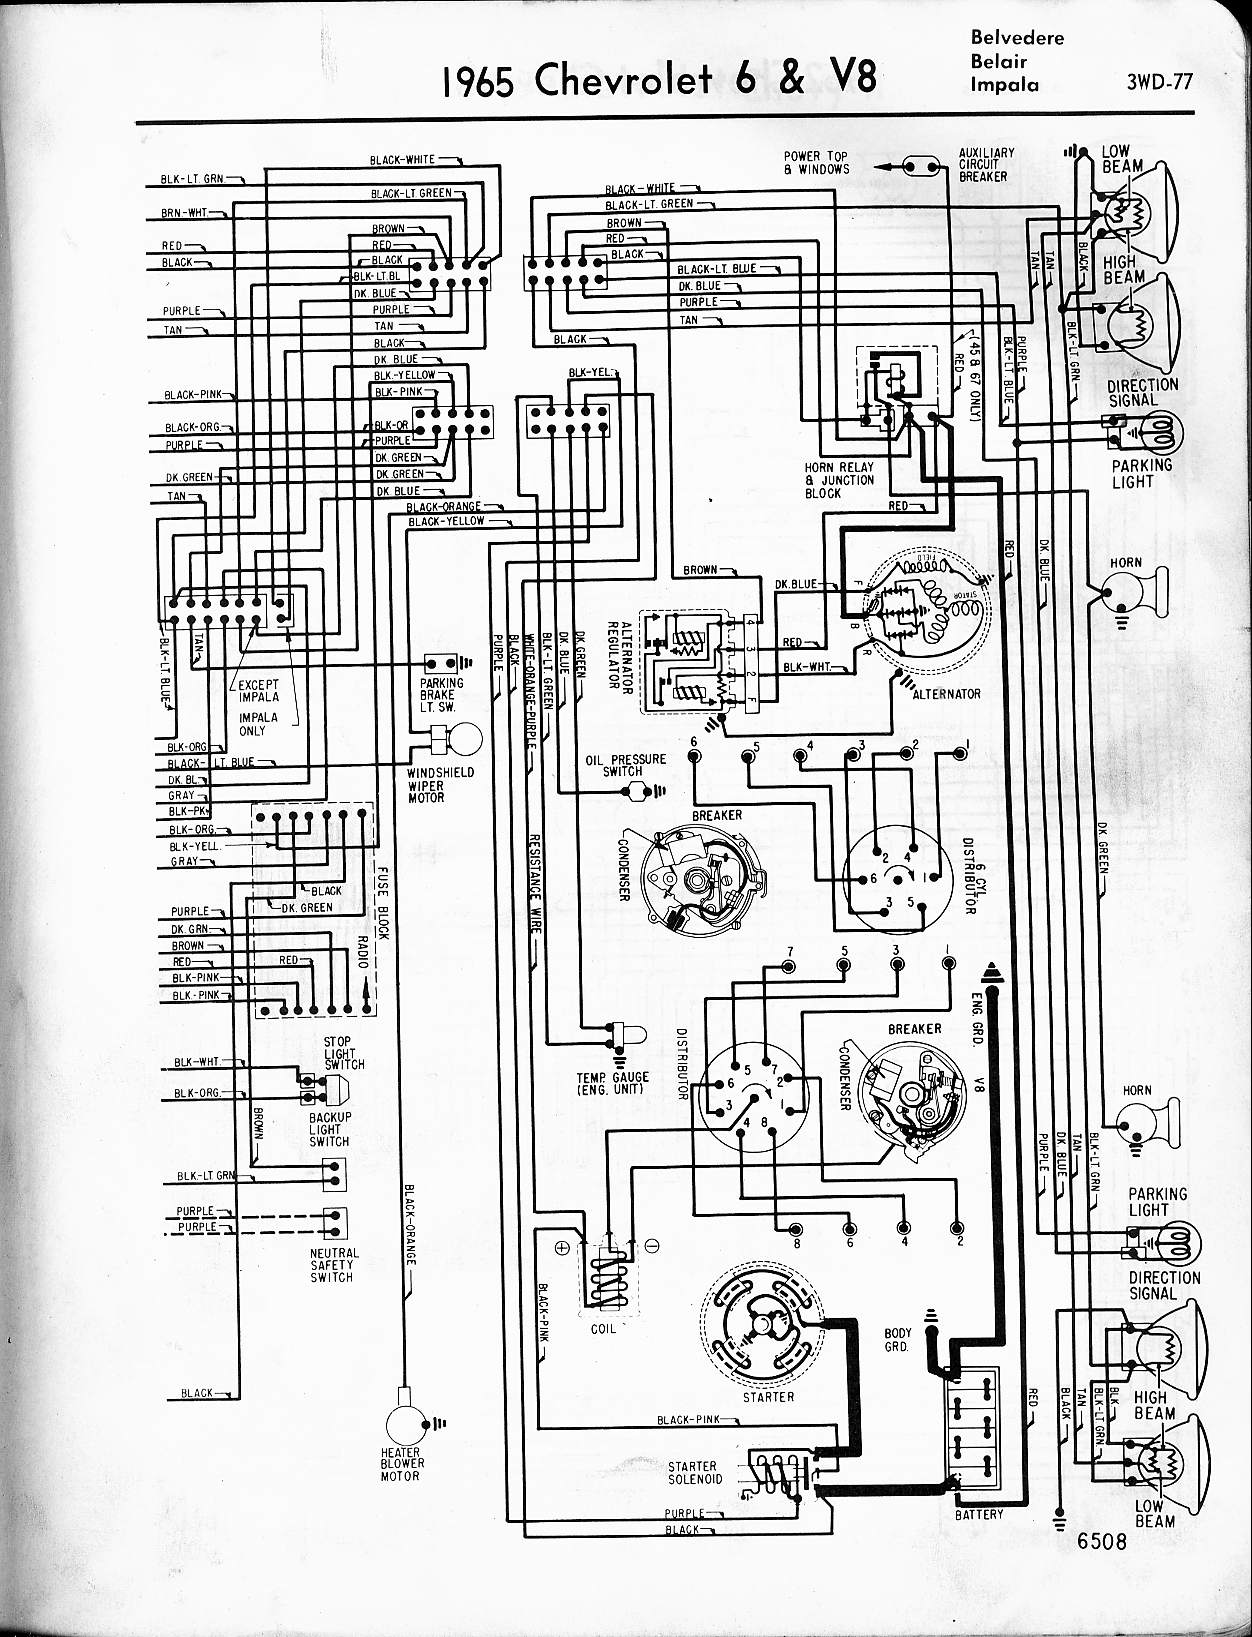 MWireChev65_3WD 077 1966 impala wiring harness 1961 impala wiring harness \u2022 free Turn Signal Relay Wiring Diagram at gsmx.co